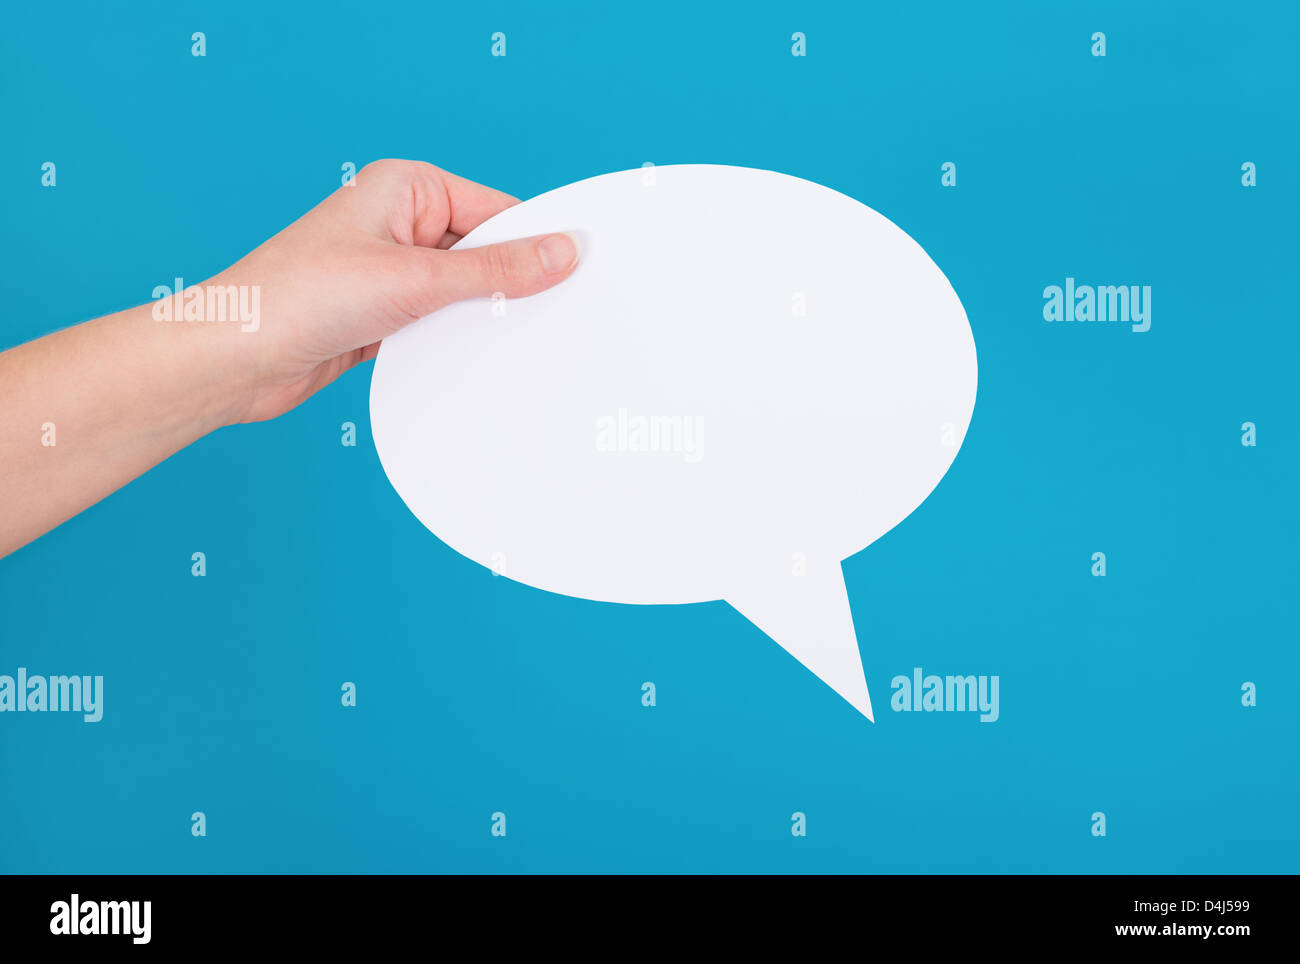 Hand holding an empty speech bubble on blue background. - Stock Image